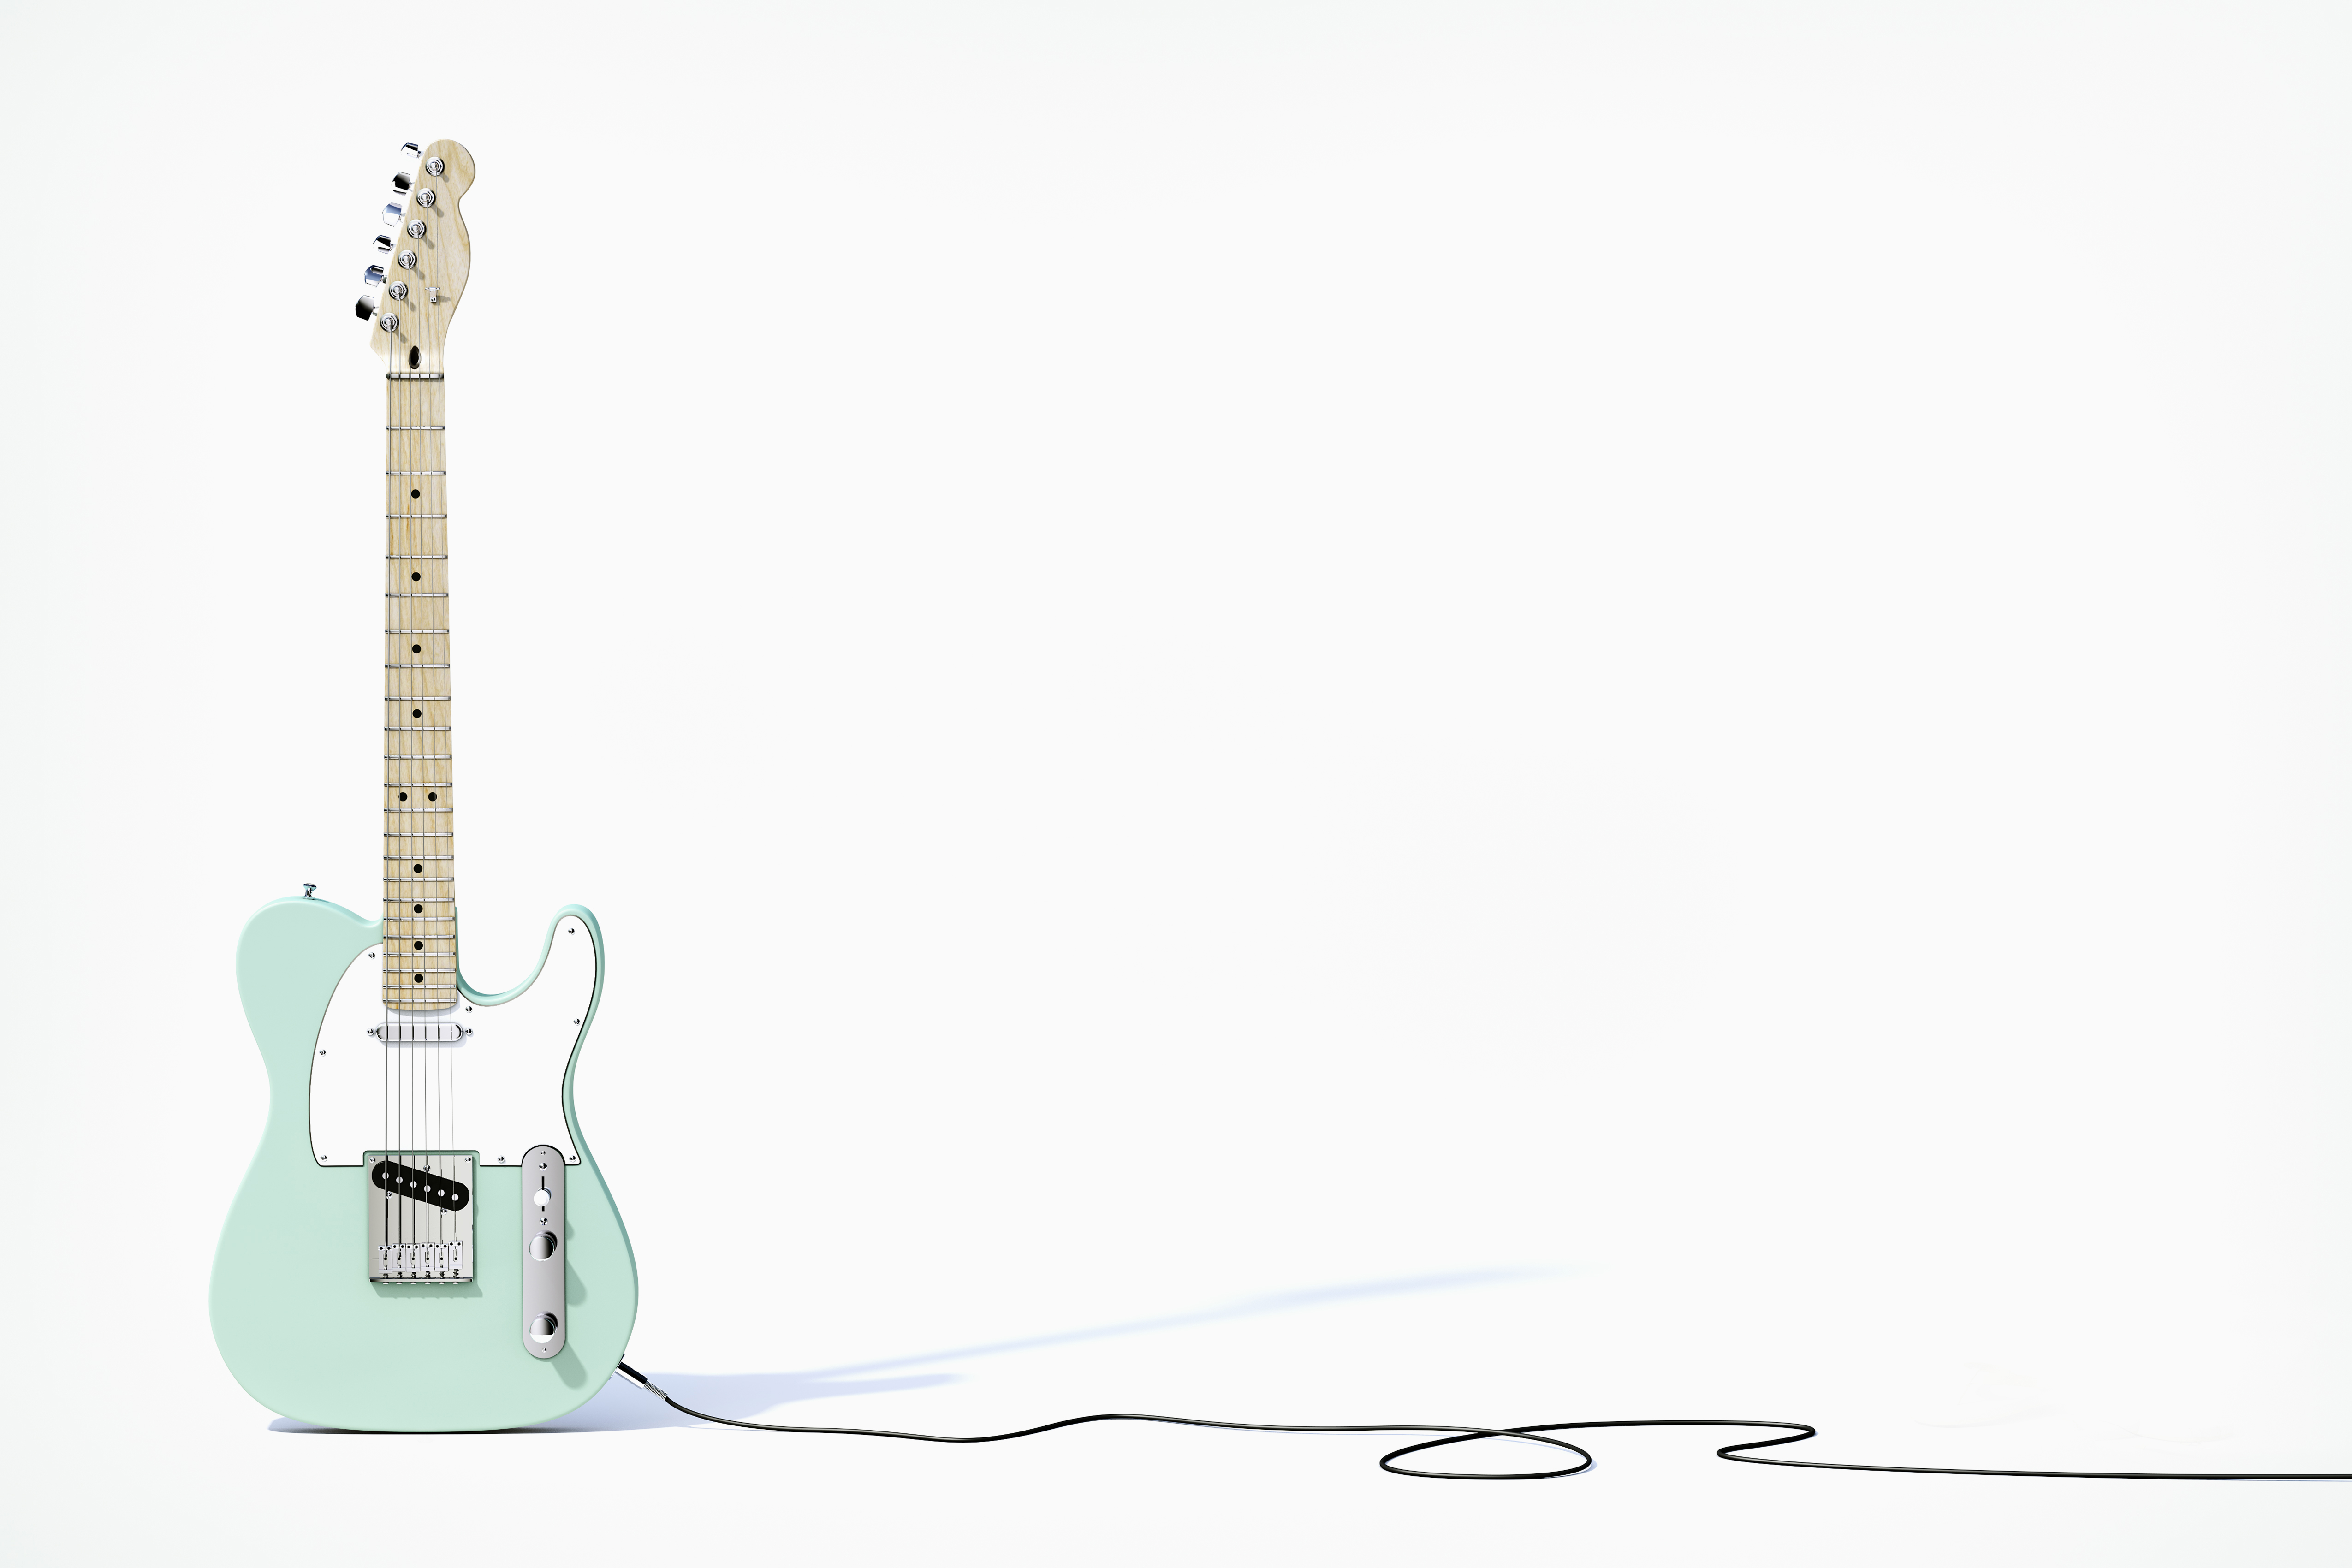 Green guitar balancing on white background